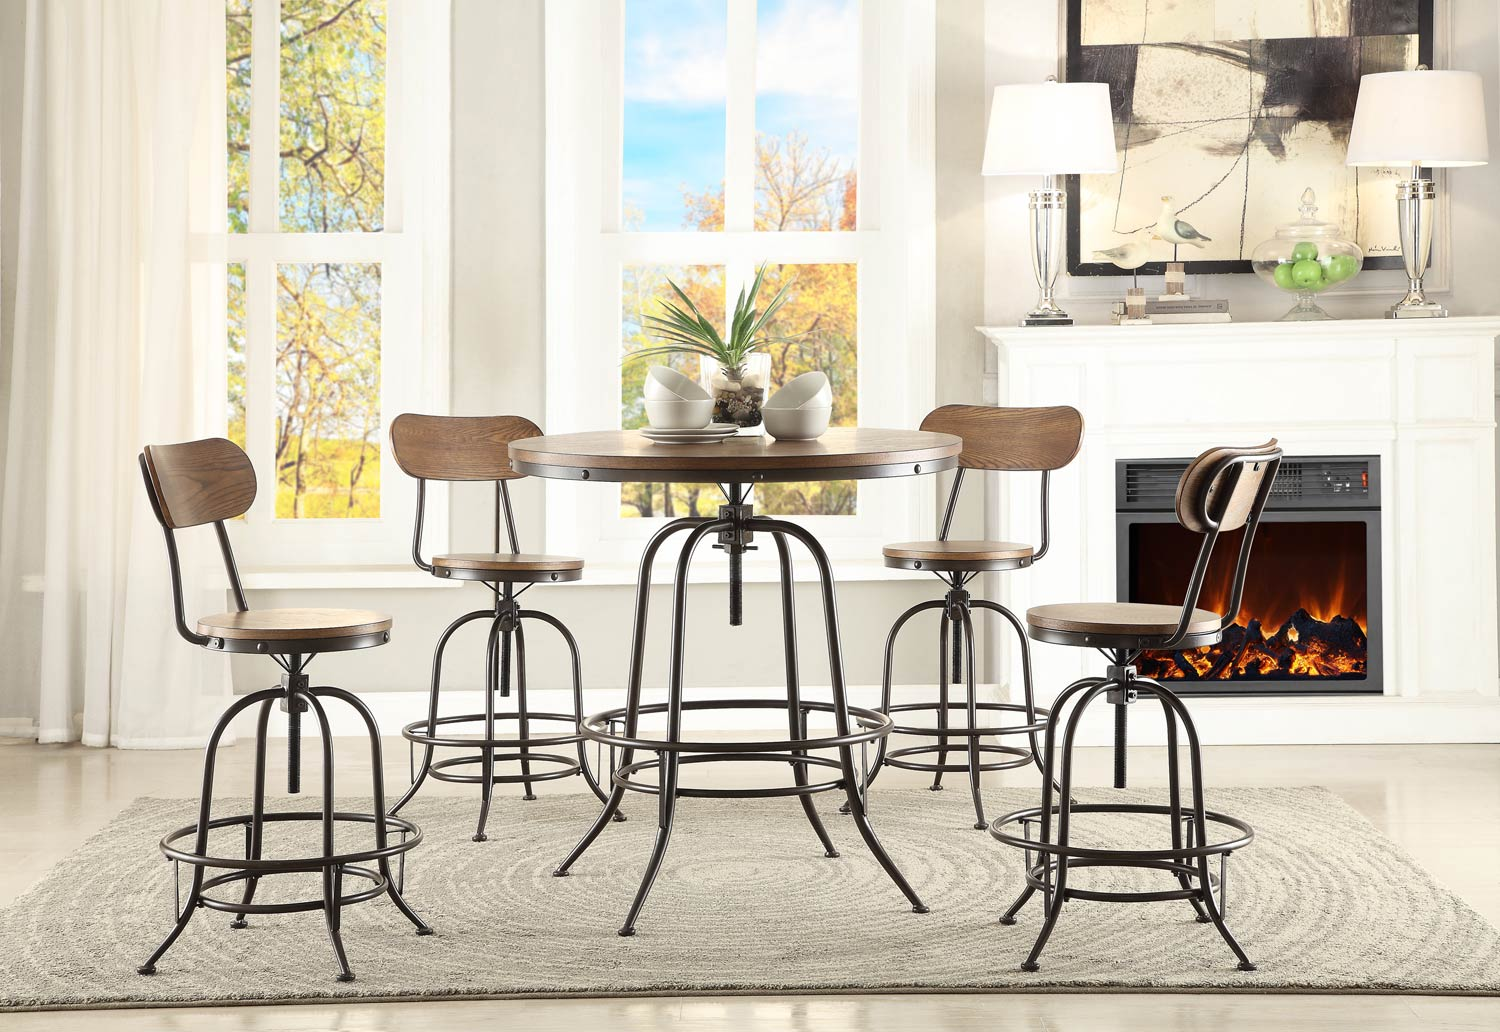 Homelegance Angstrom Round Counter Height Dining Set - Adjustable Height A